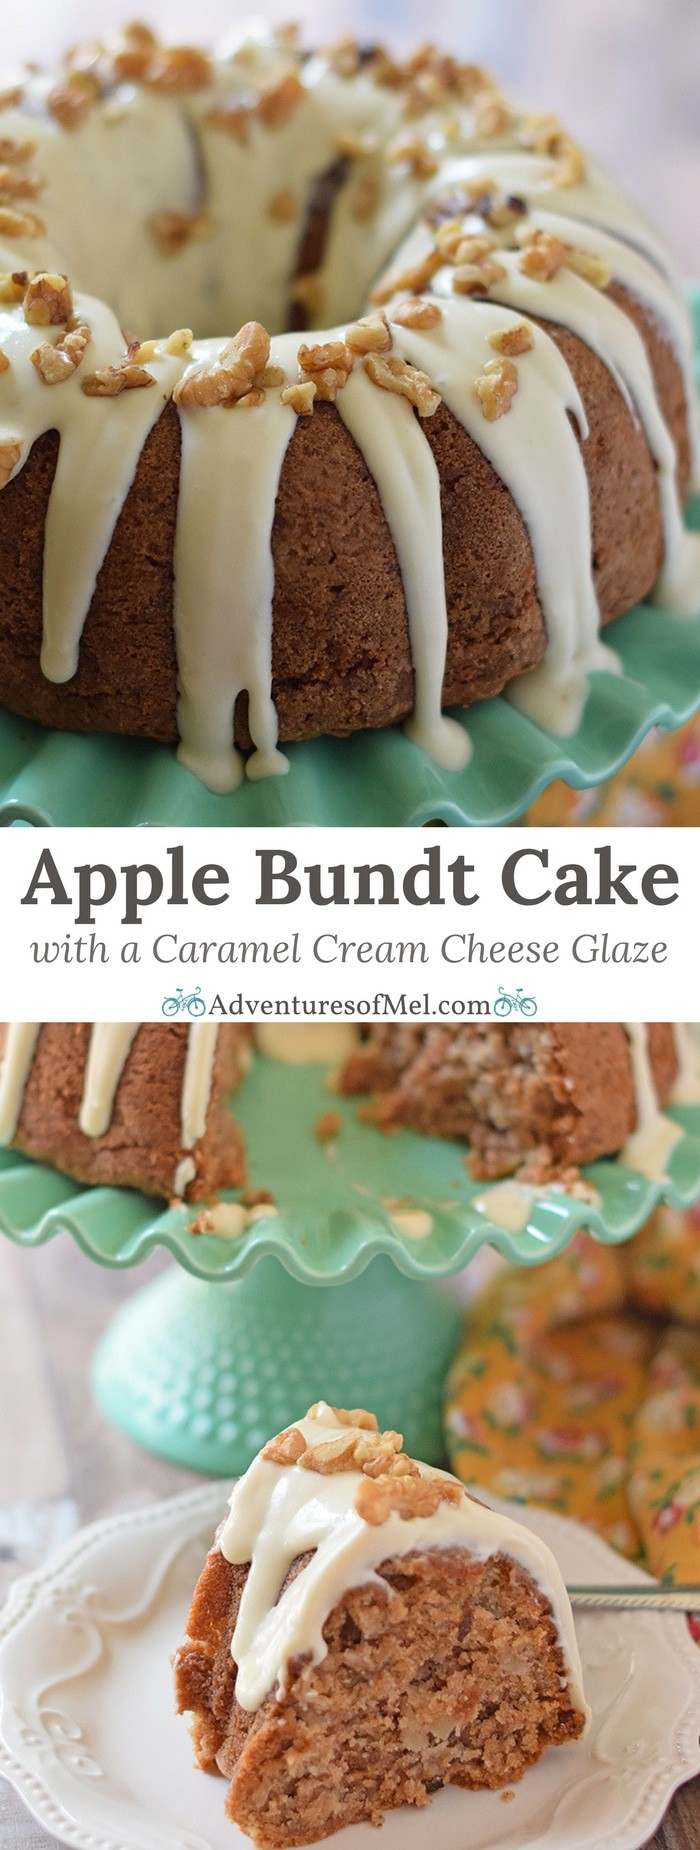 Apple Bundt Cake, a delicious recipe with apples, cinnamon, walnuts, and a caramel cream cheese glaze. Makes a scrumptious fall and holiday dessert!